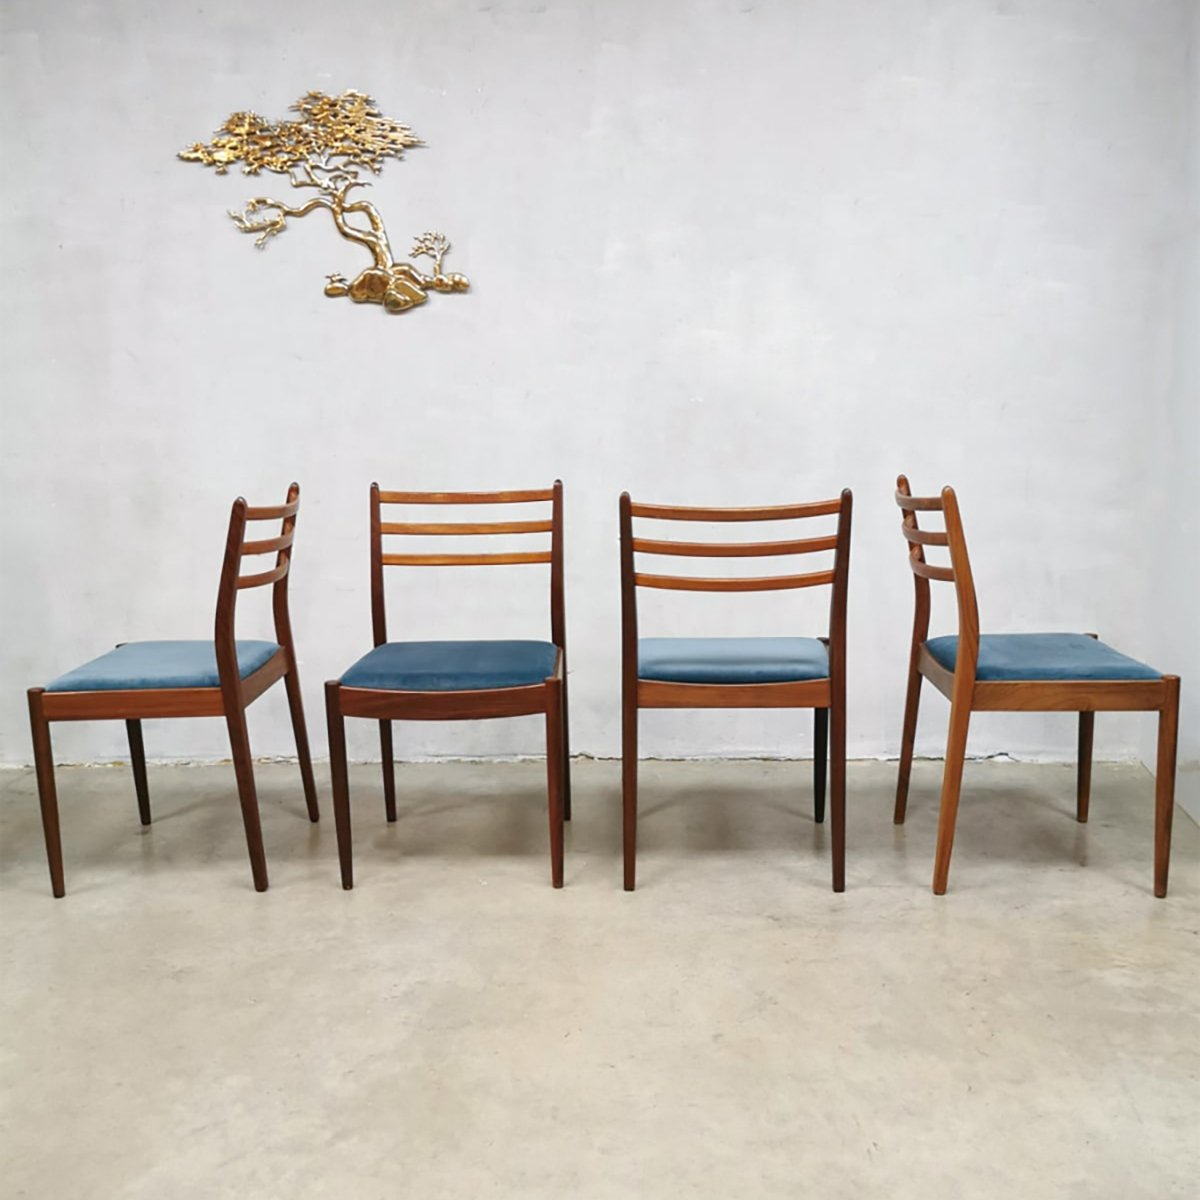 Marvelous Set Of 4 Vintage Design Dining Chairs By Victor Wilkens For G Plan Dailytribune Chair Design For Home Dailytribuneorg